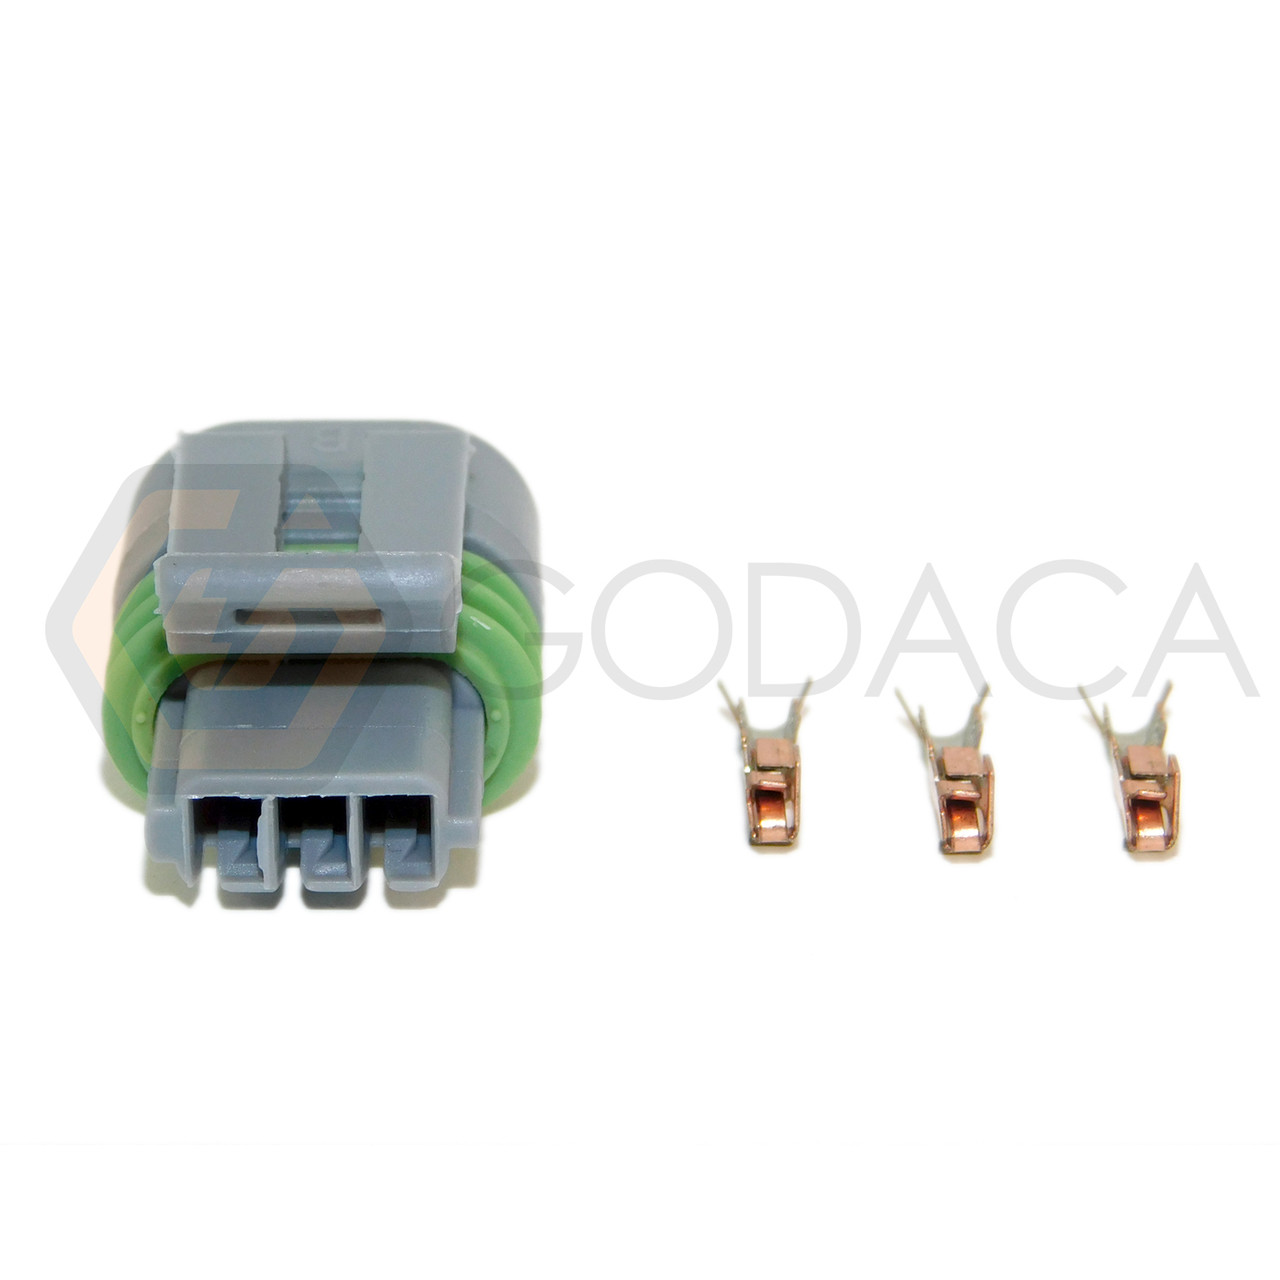 1x connector 3 way for gm camshaft position sensor cps pt148 w out wire godaca llc  [ 1280 x 1280 Pixel ]